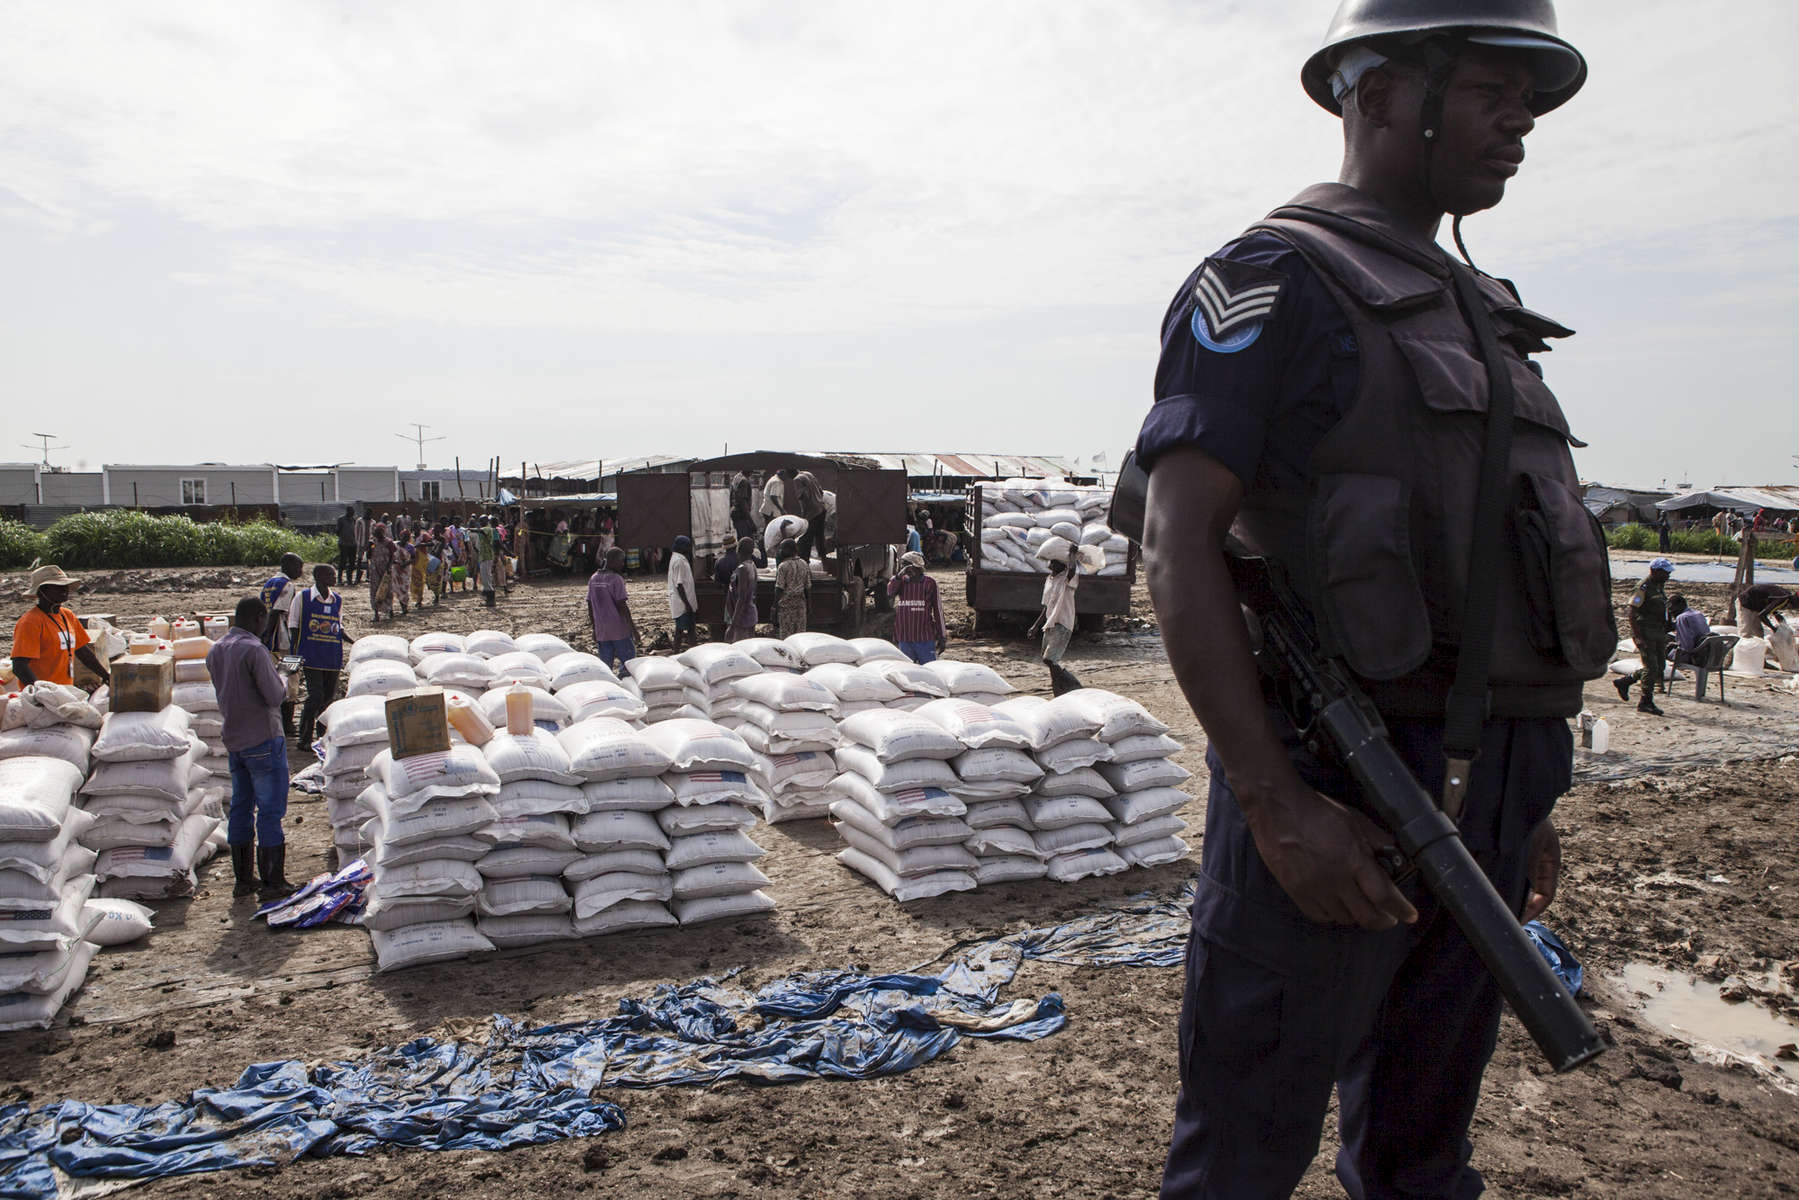 A member of the United Nations Police, UNPOL, stands guard during a World Food Program food distribution in the Protection of Civilians (POC) site at the United Nations Mission in South Sudan (UNMISS) compound in Malakal, South Sudan on Friday, July 15, 2016. The Malakal POC site houses over 32,000 displaced people mainly from the Shilluk and Nuer tribes. In February of this year, members of the Dinka tribe, who resided in the camp at the time, carried out a coordinated attack within the site leading to the destruction of hundreds of shelters and many deaths. Since then, most members of the Dinka tribe have fled to Malakal town where they occupy the homes of those still displaced. The UN has assured the displaced people that increased security measures around the camp will protect them from any further attack. Most of the displace are not convinced.